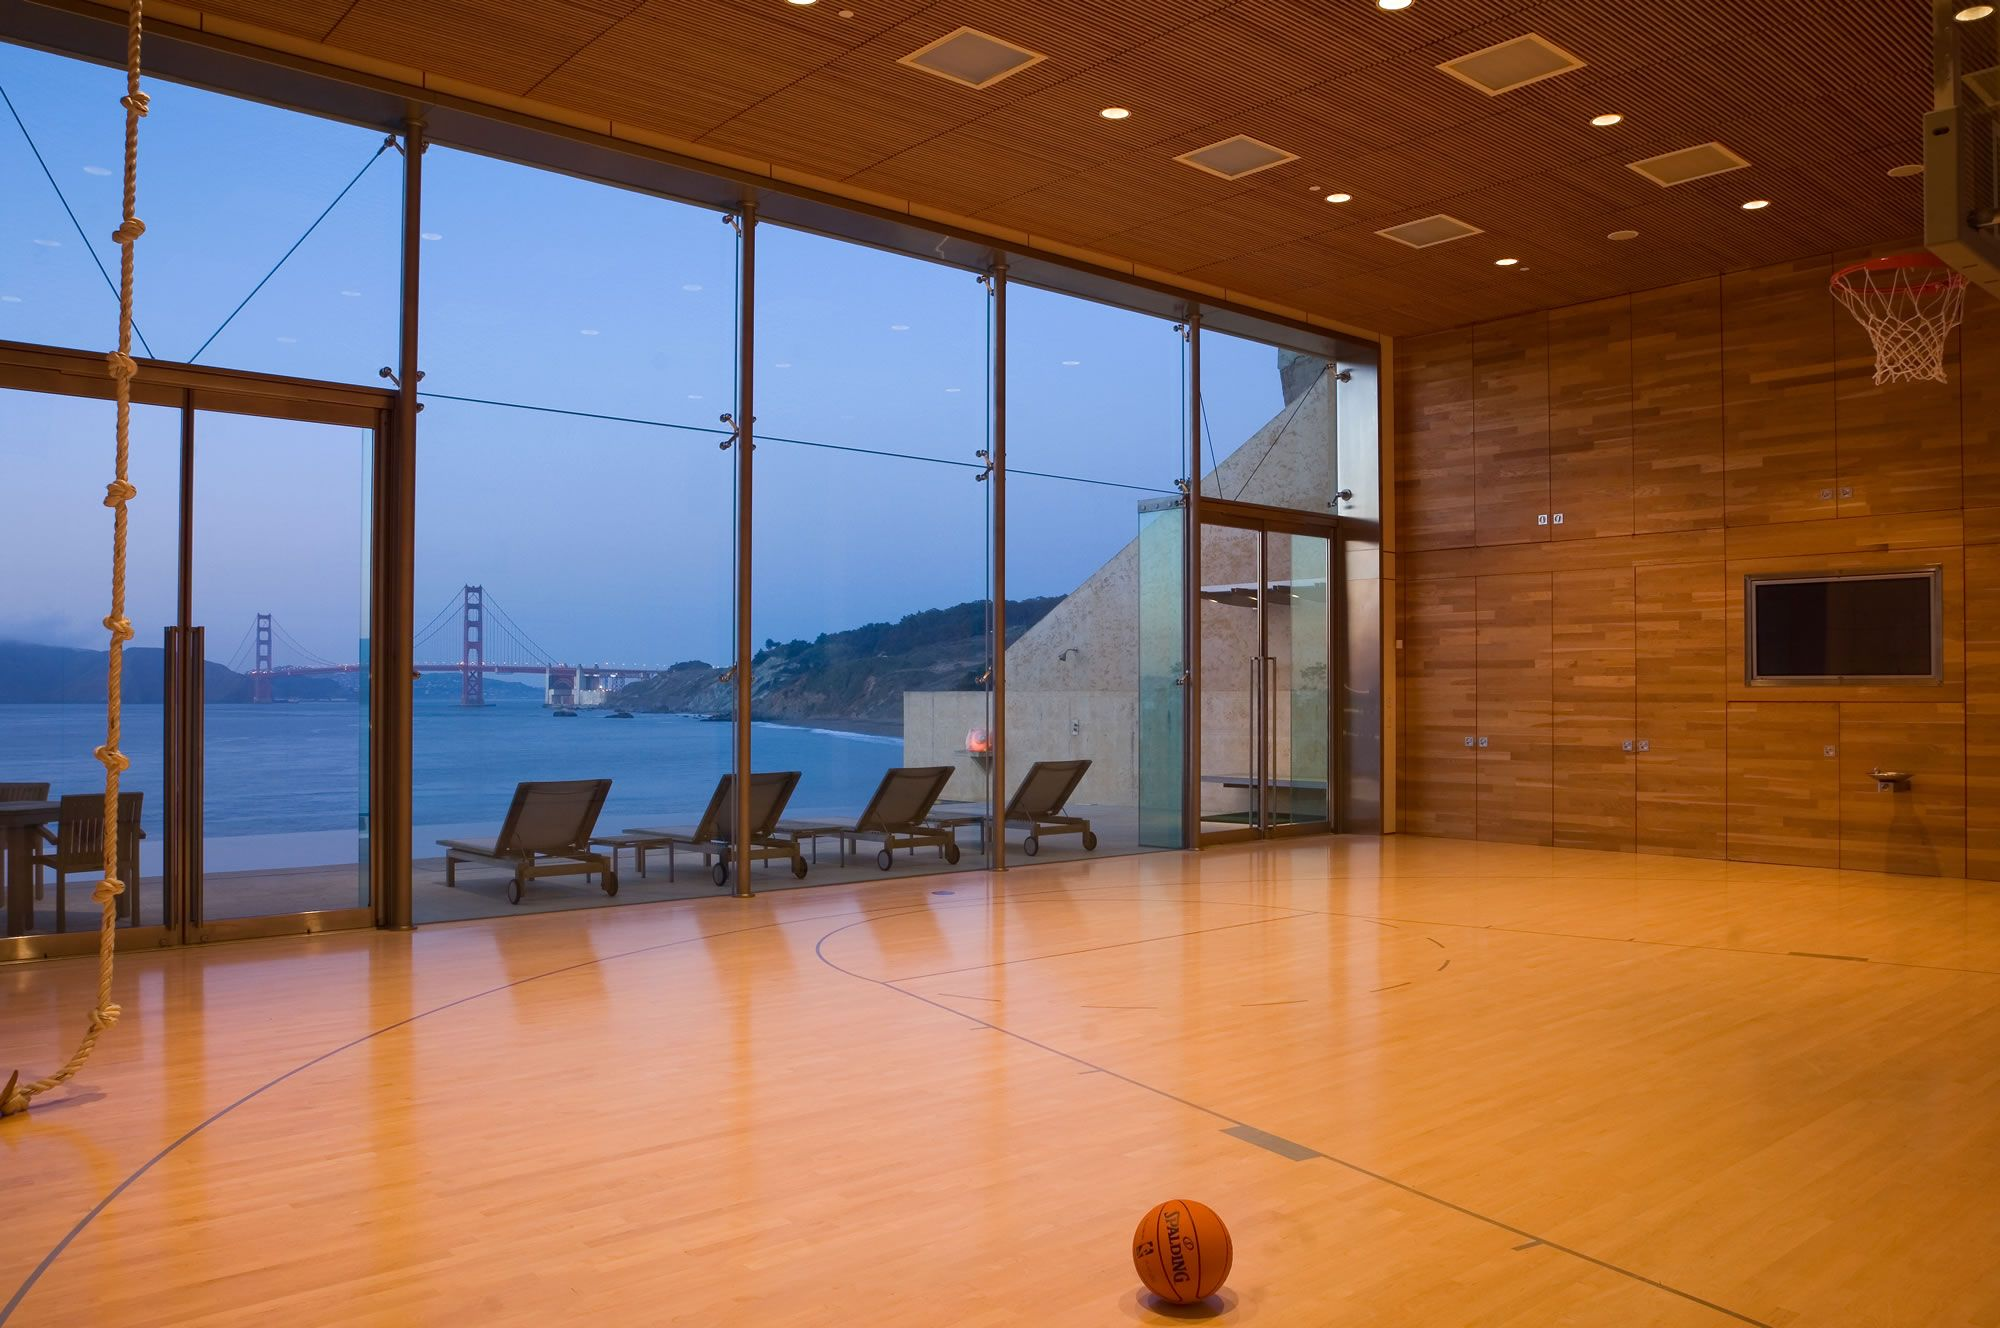 Sea Cliff Addition Gym Indoor basketball court, Home